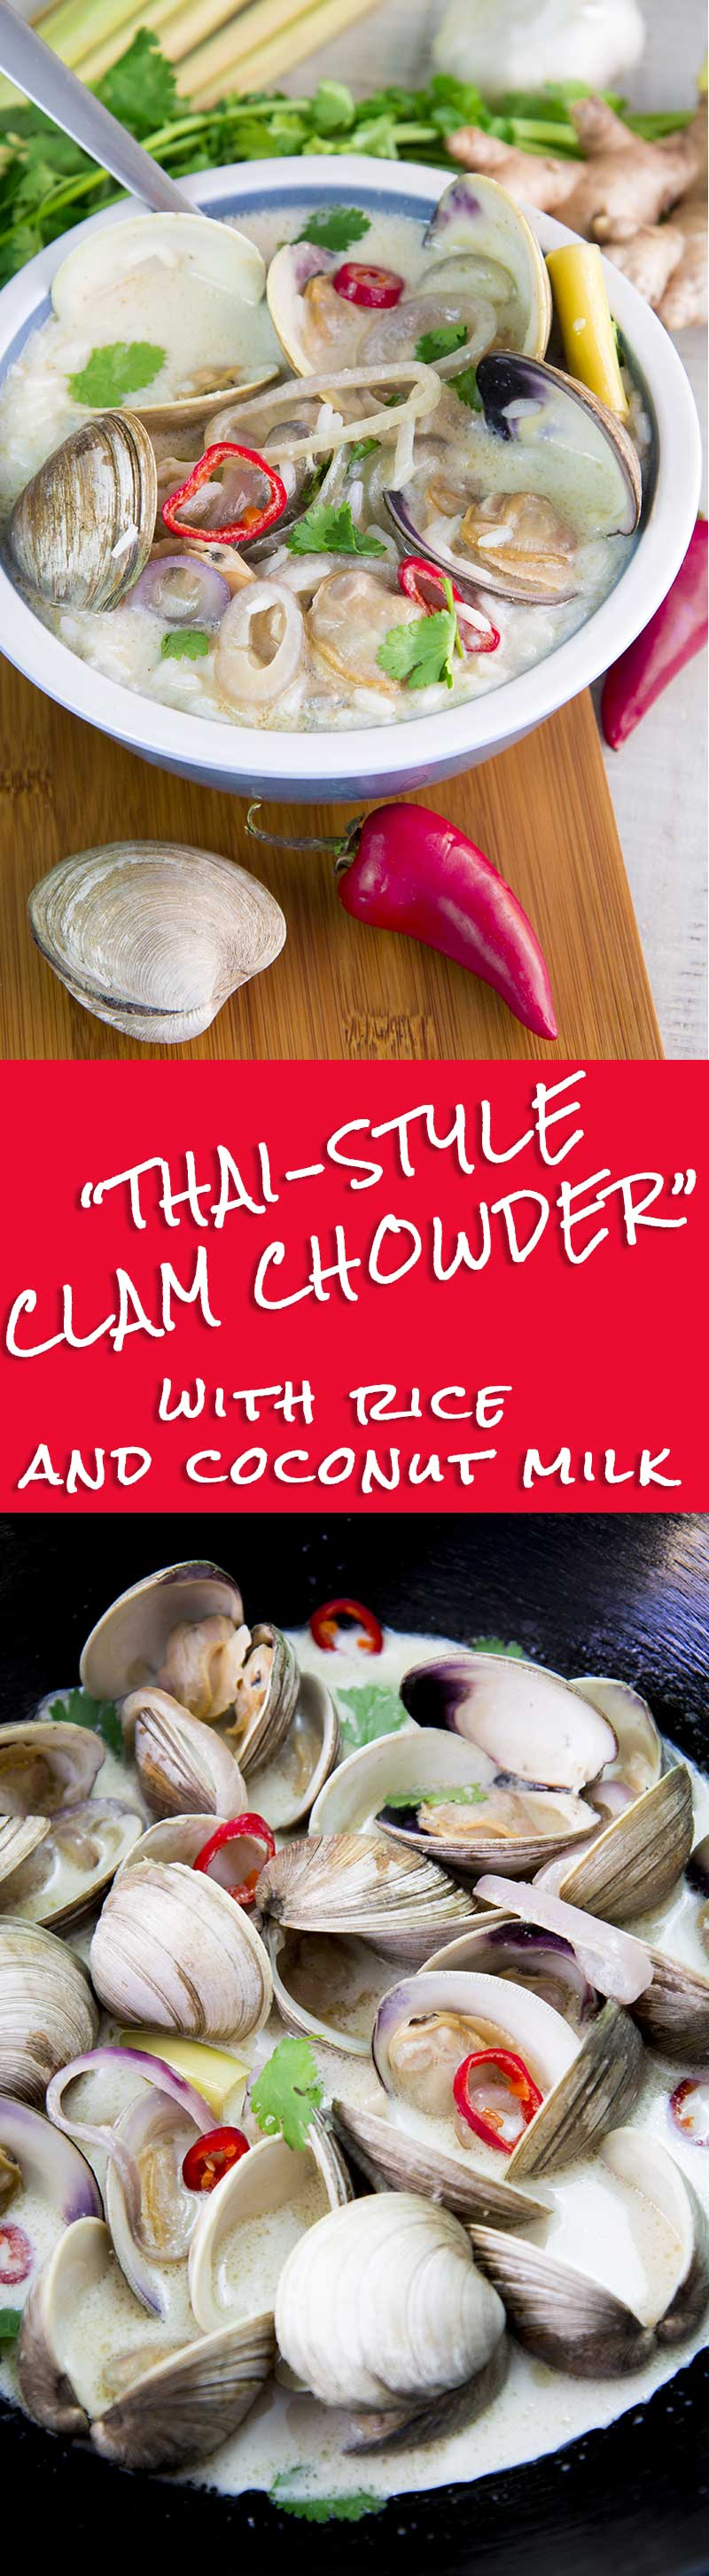 THAI-STYLE CLAM CHOWDER with rice and coconut milk